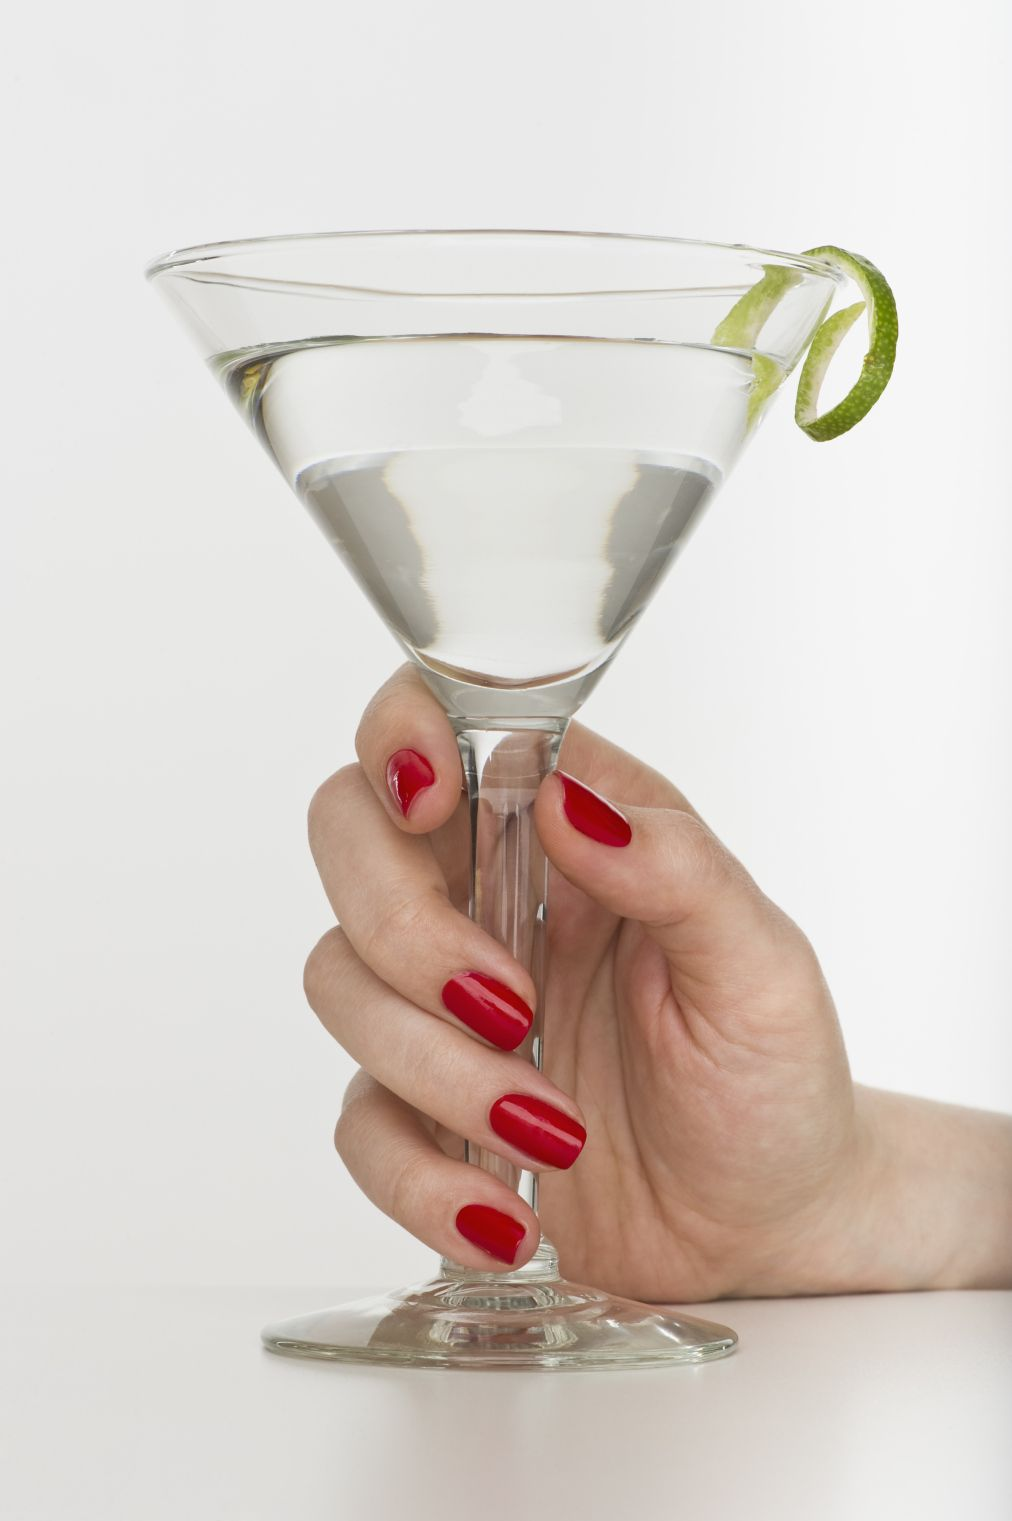 I Shouldn't Have to Dip My Nails In a Drink to Reduce My Risk of Rape